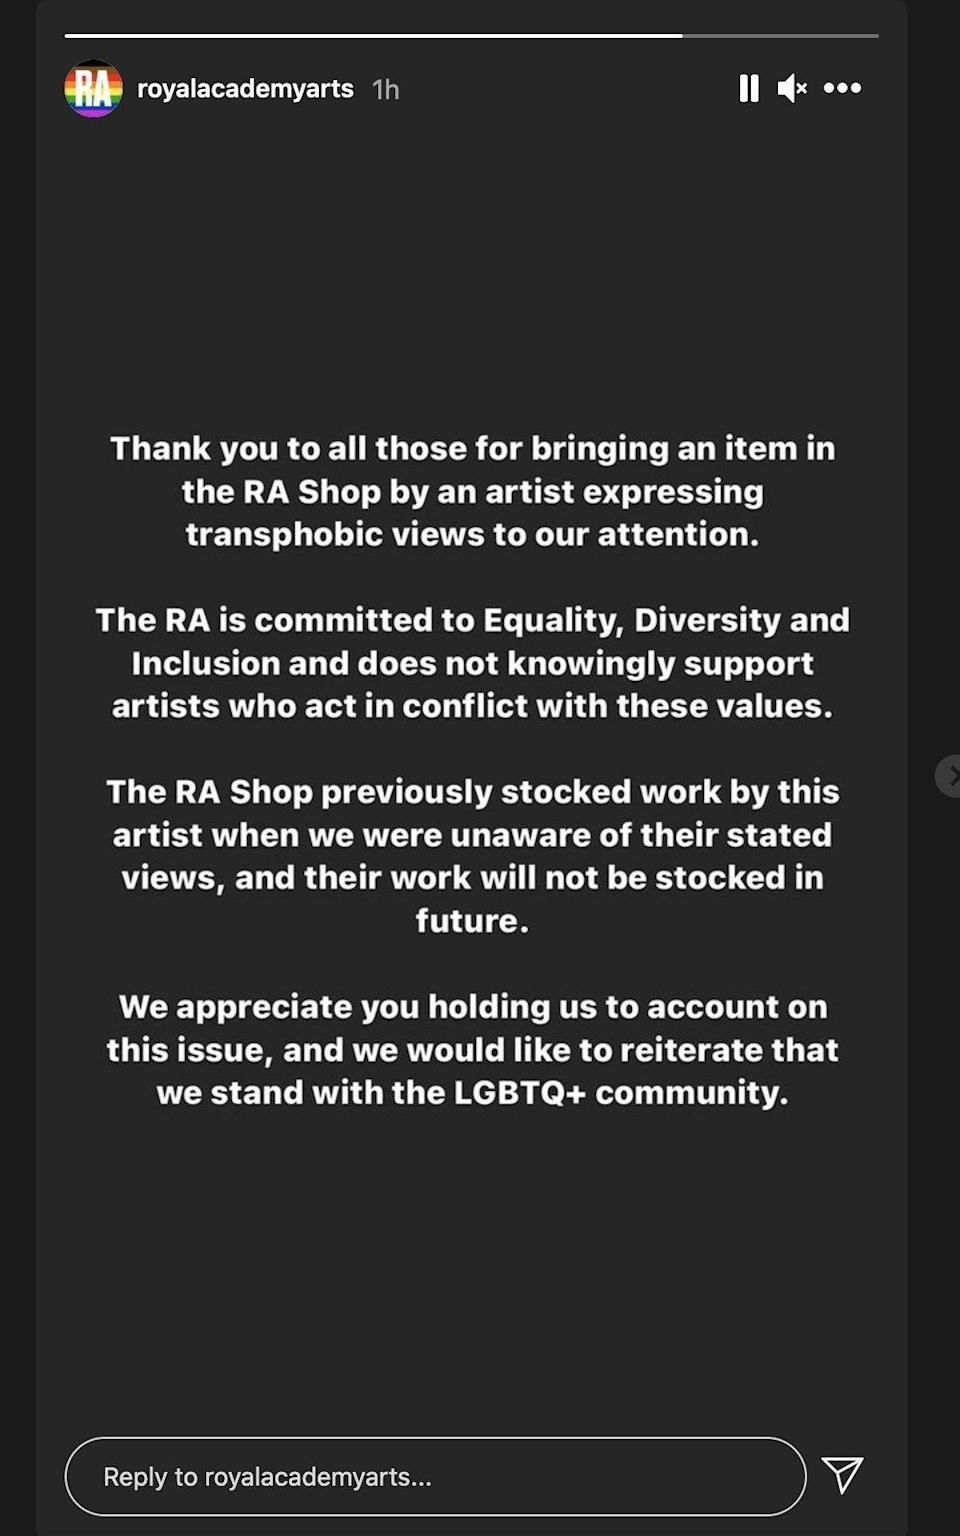 The RA made a statement on Instagram